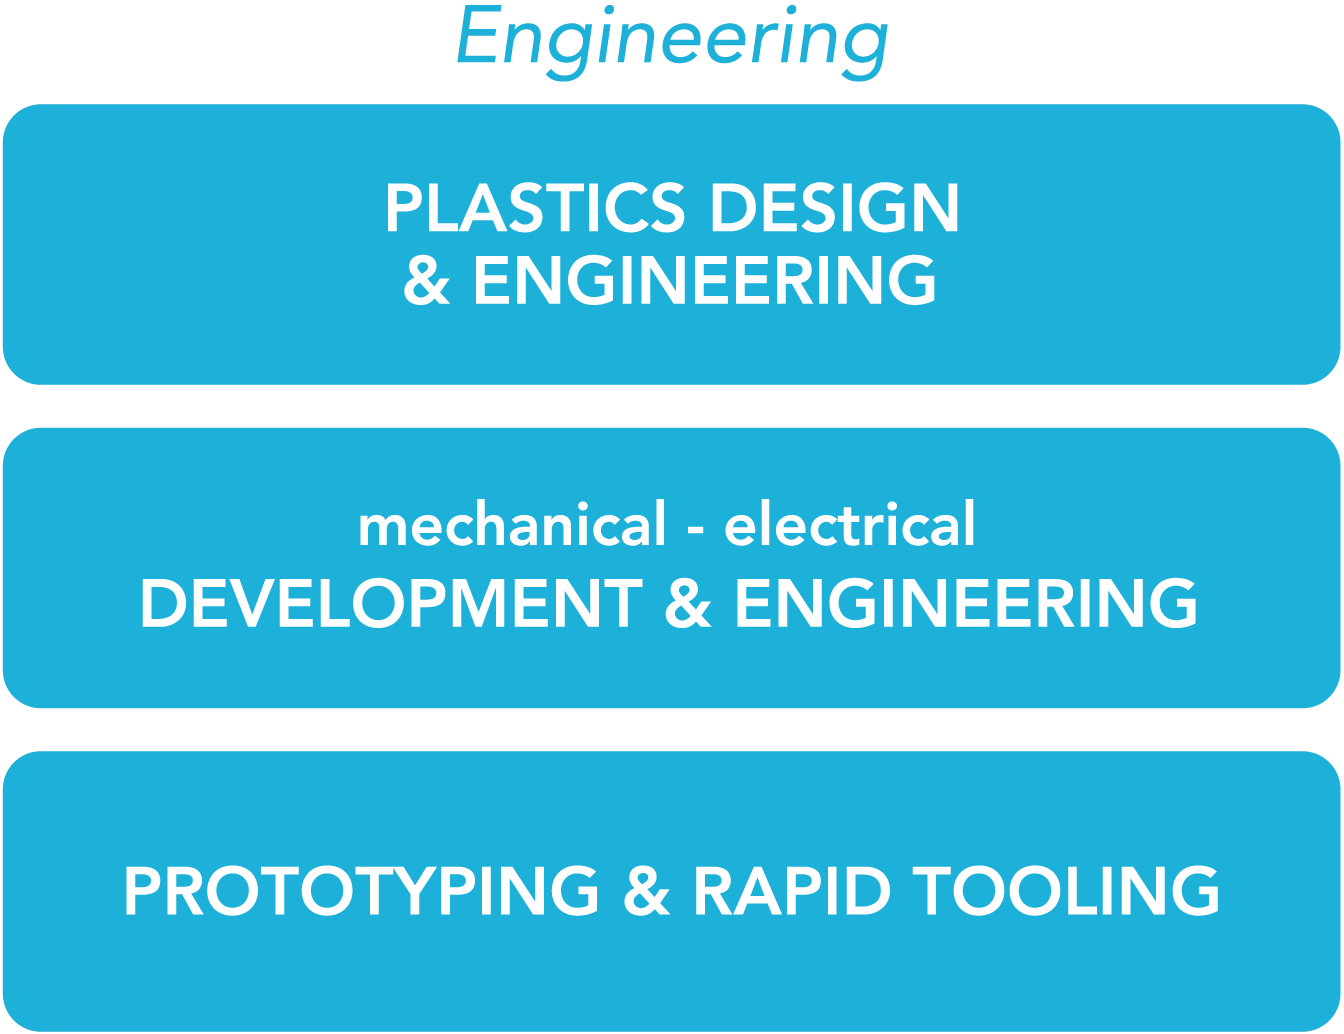 Product development engineering